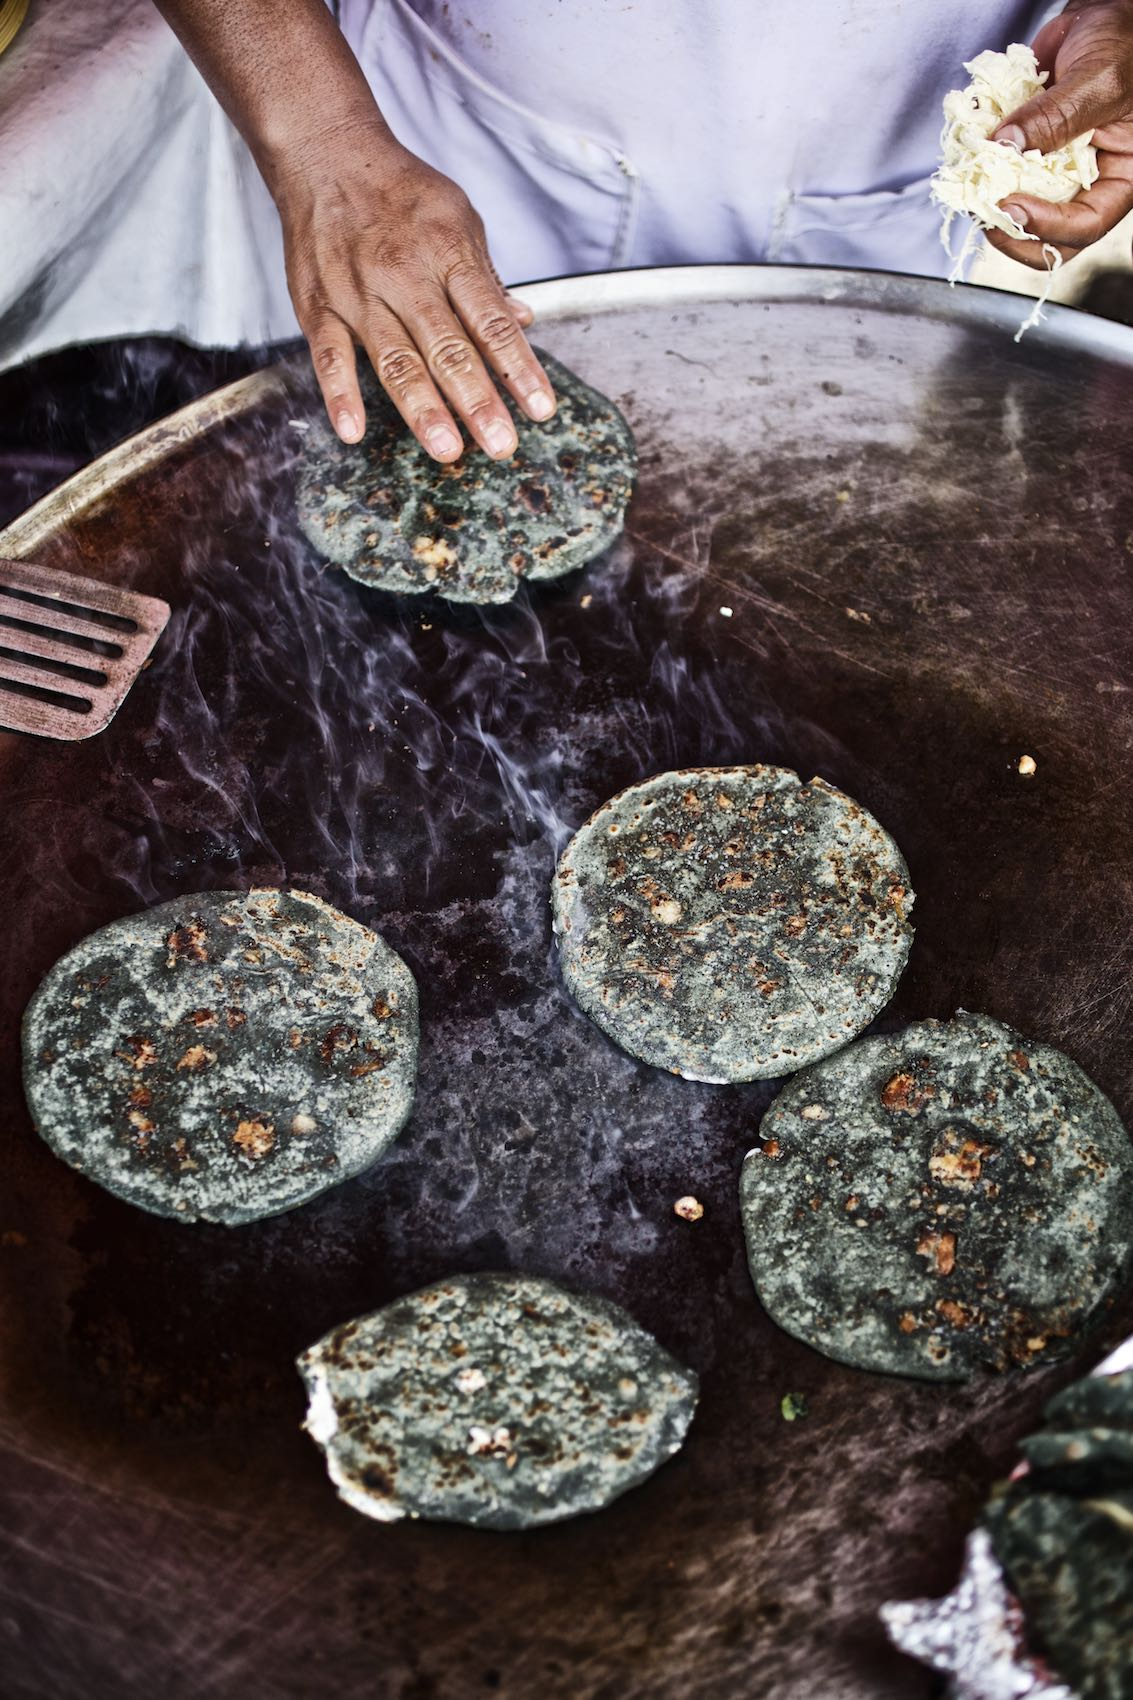 Jody Horton Photography - Blue corn tortillas cooking on a plancha.